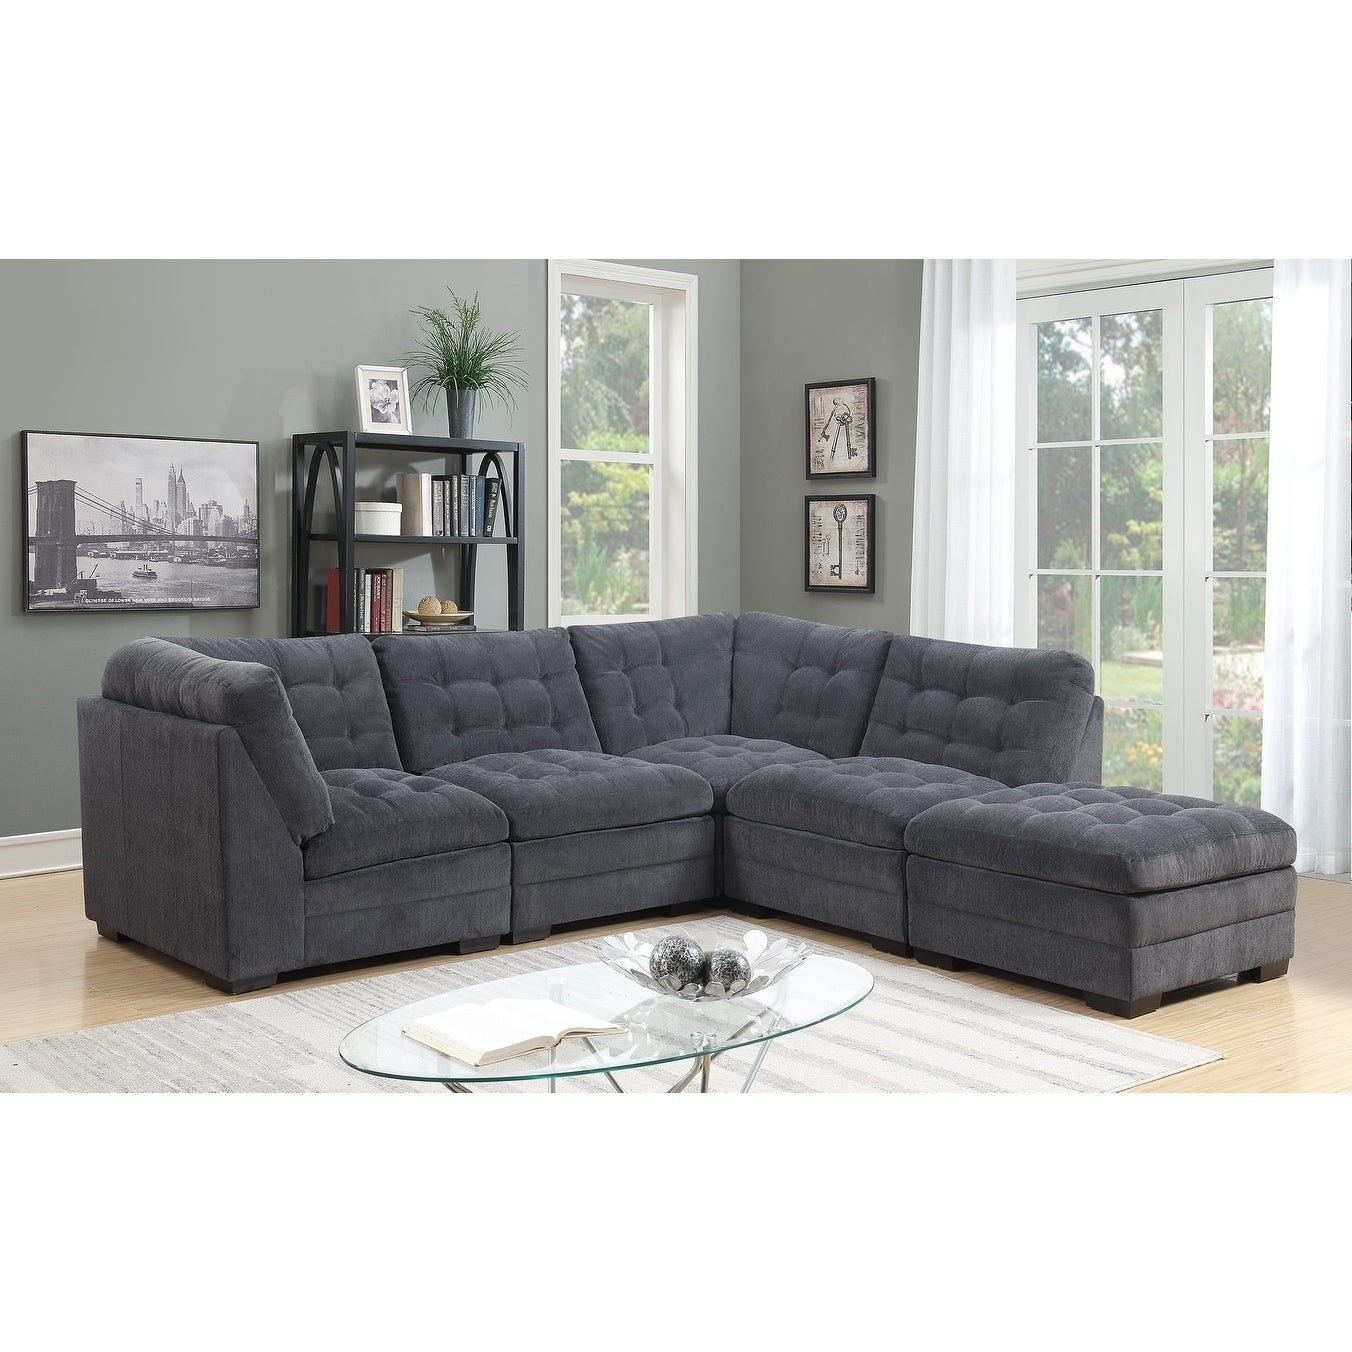 Best Morrison Contemporary Modular 4 Piece Sectional Charcoal 400 x 300